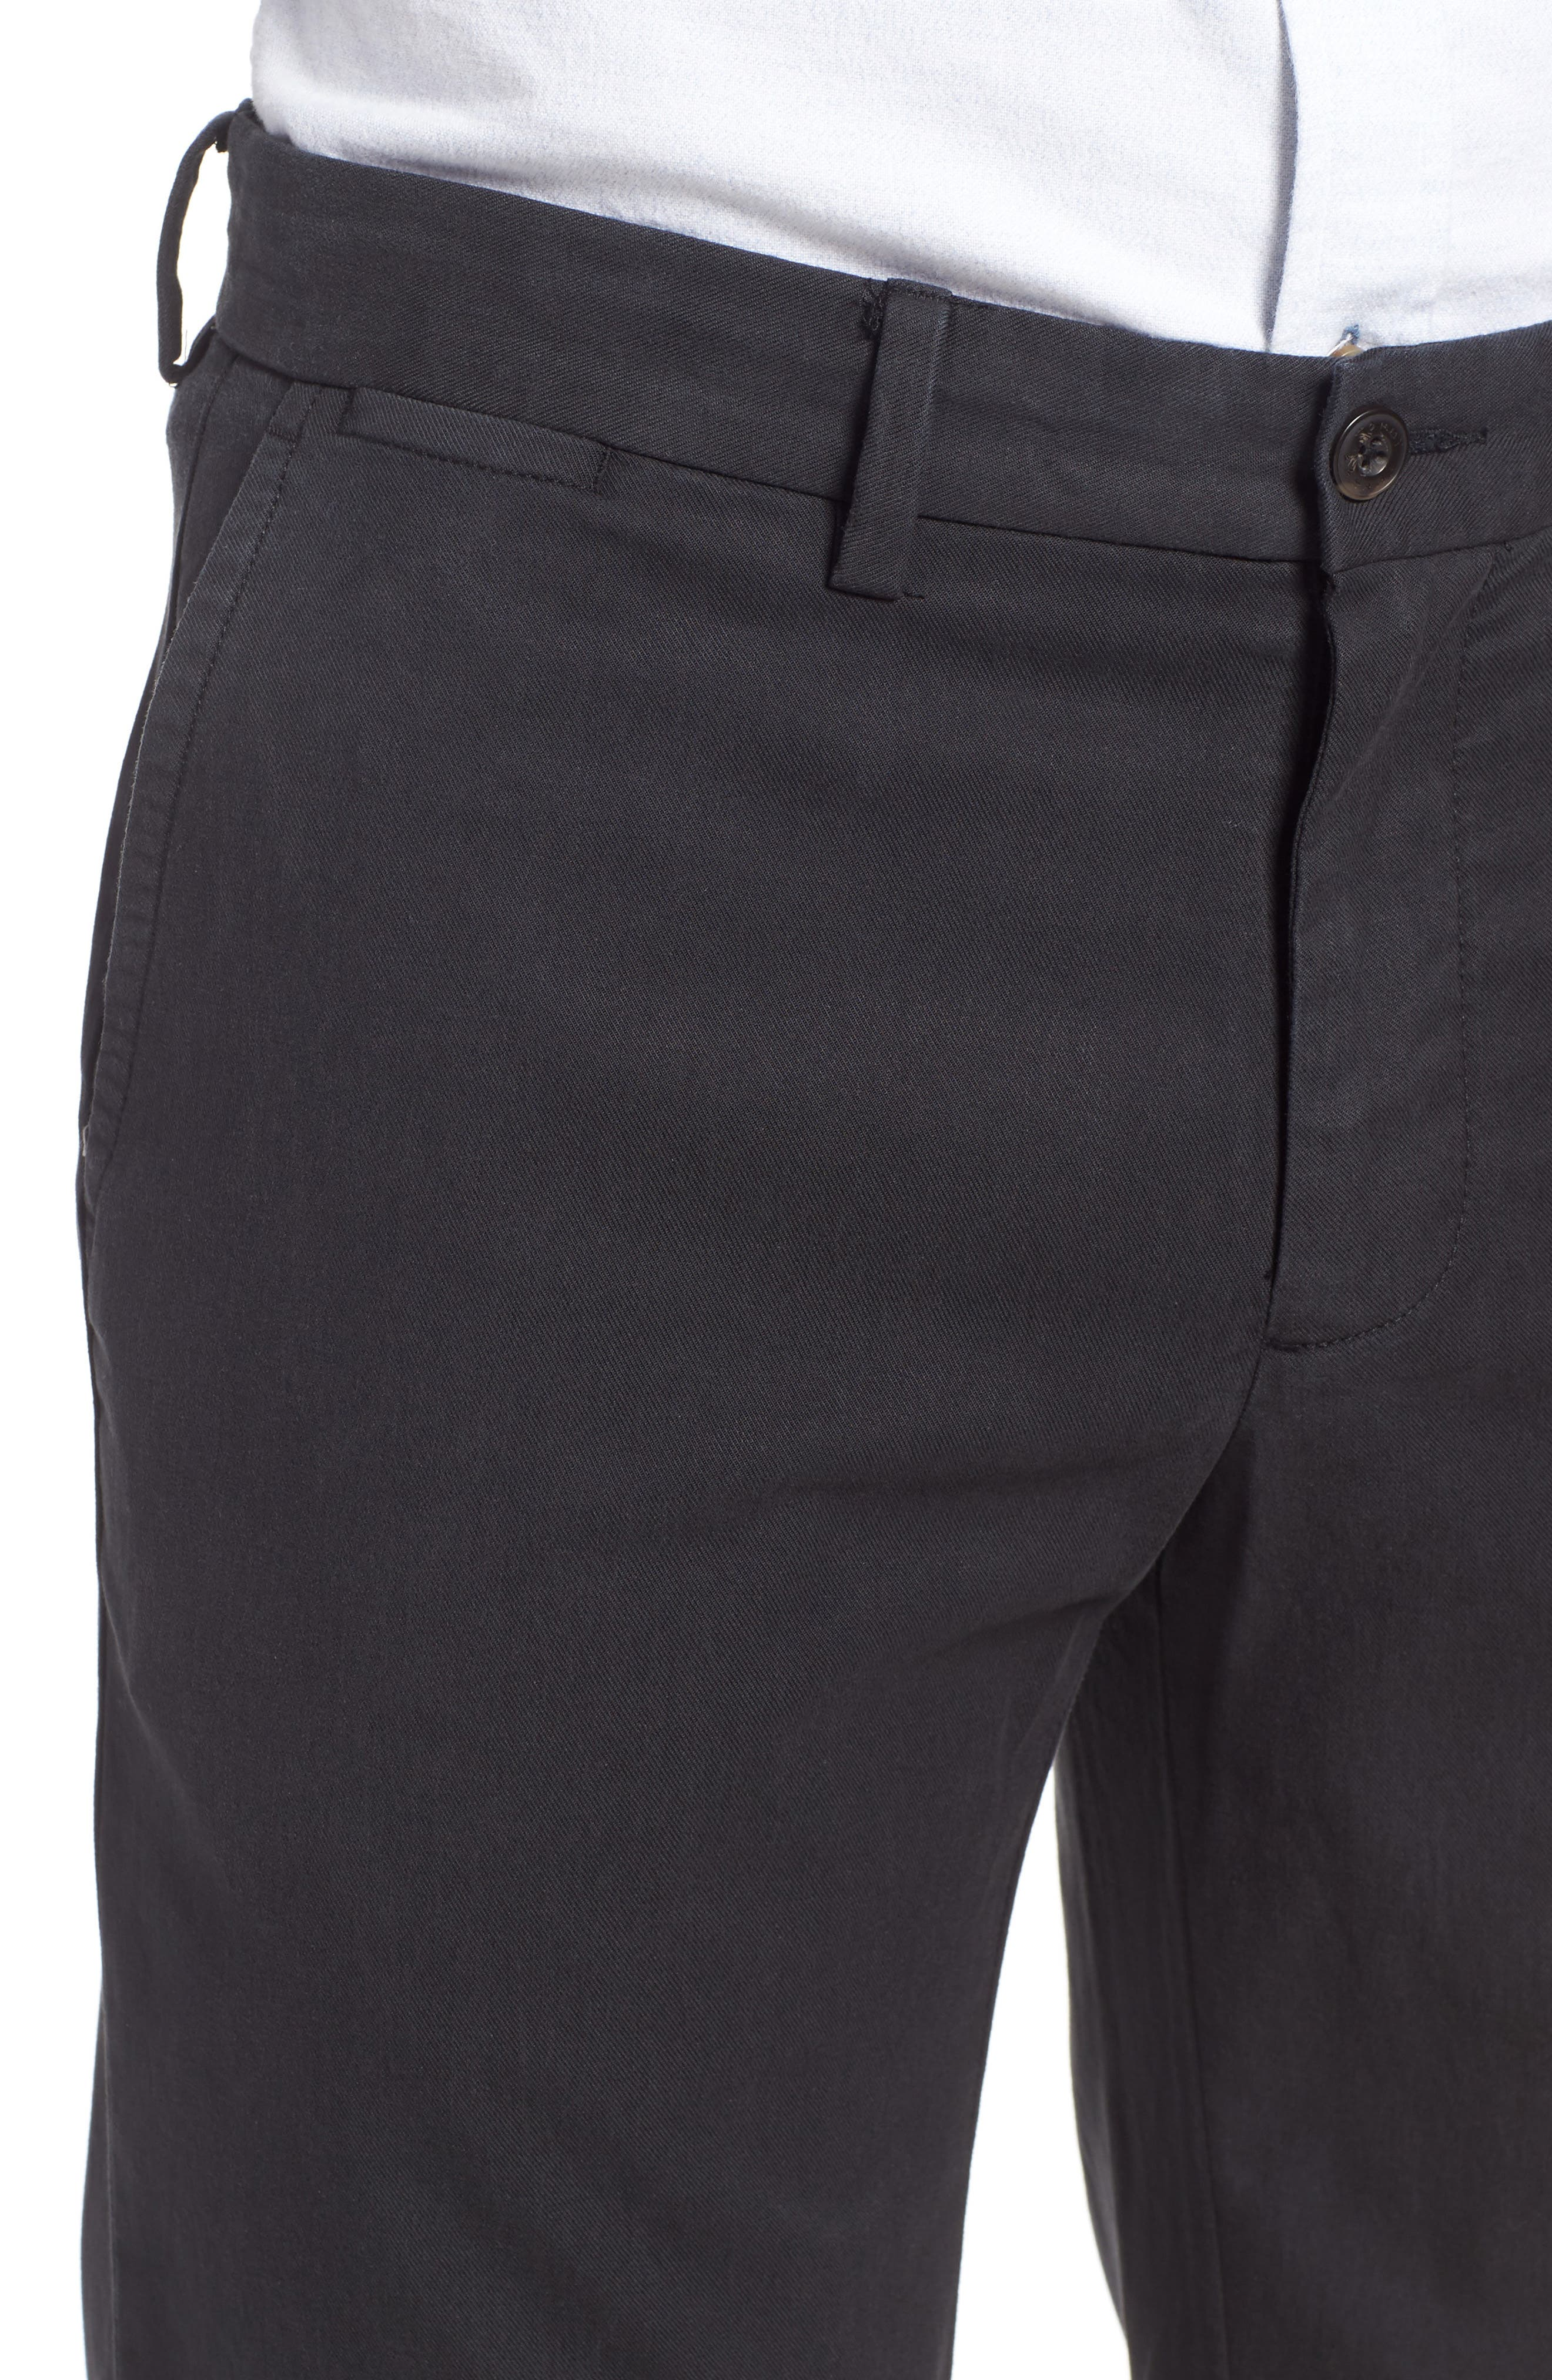 Offshore Flat Front Pants,                             Alternate thumbnail 4, color,                             001